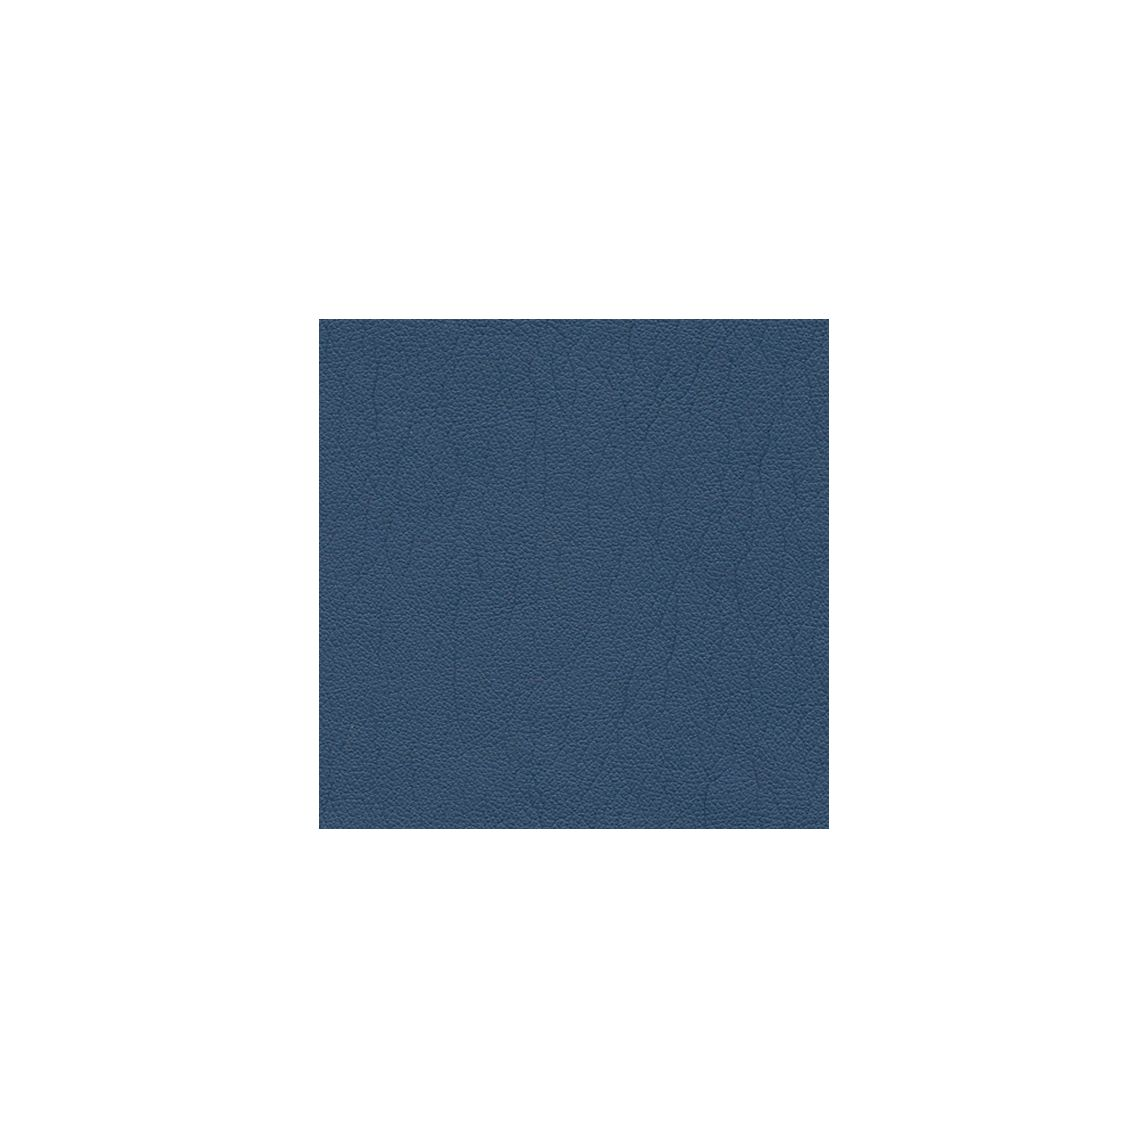 Ultraleather Pro Blueberry Swatch